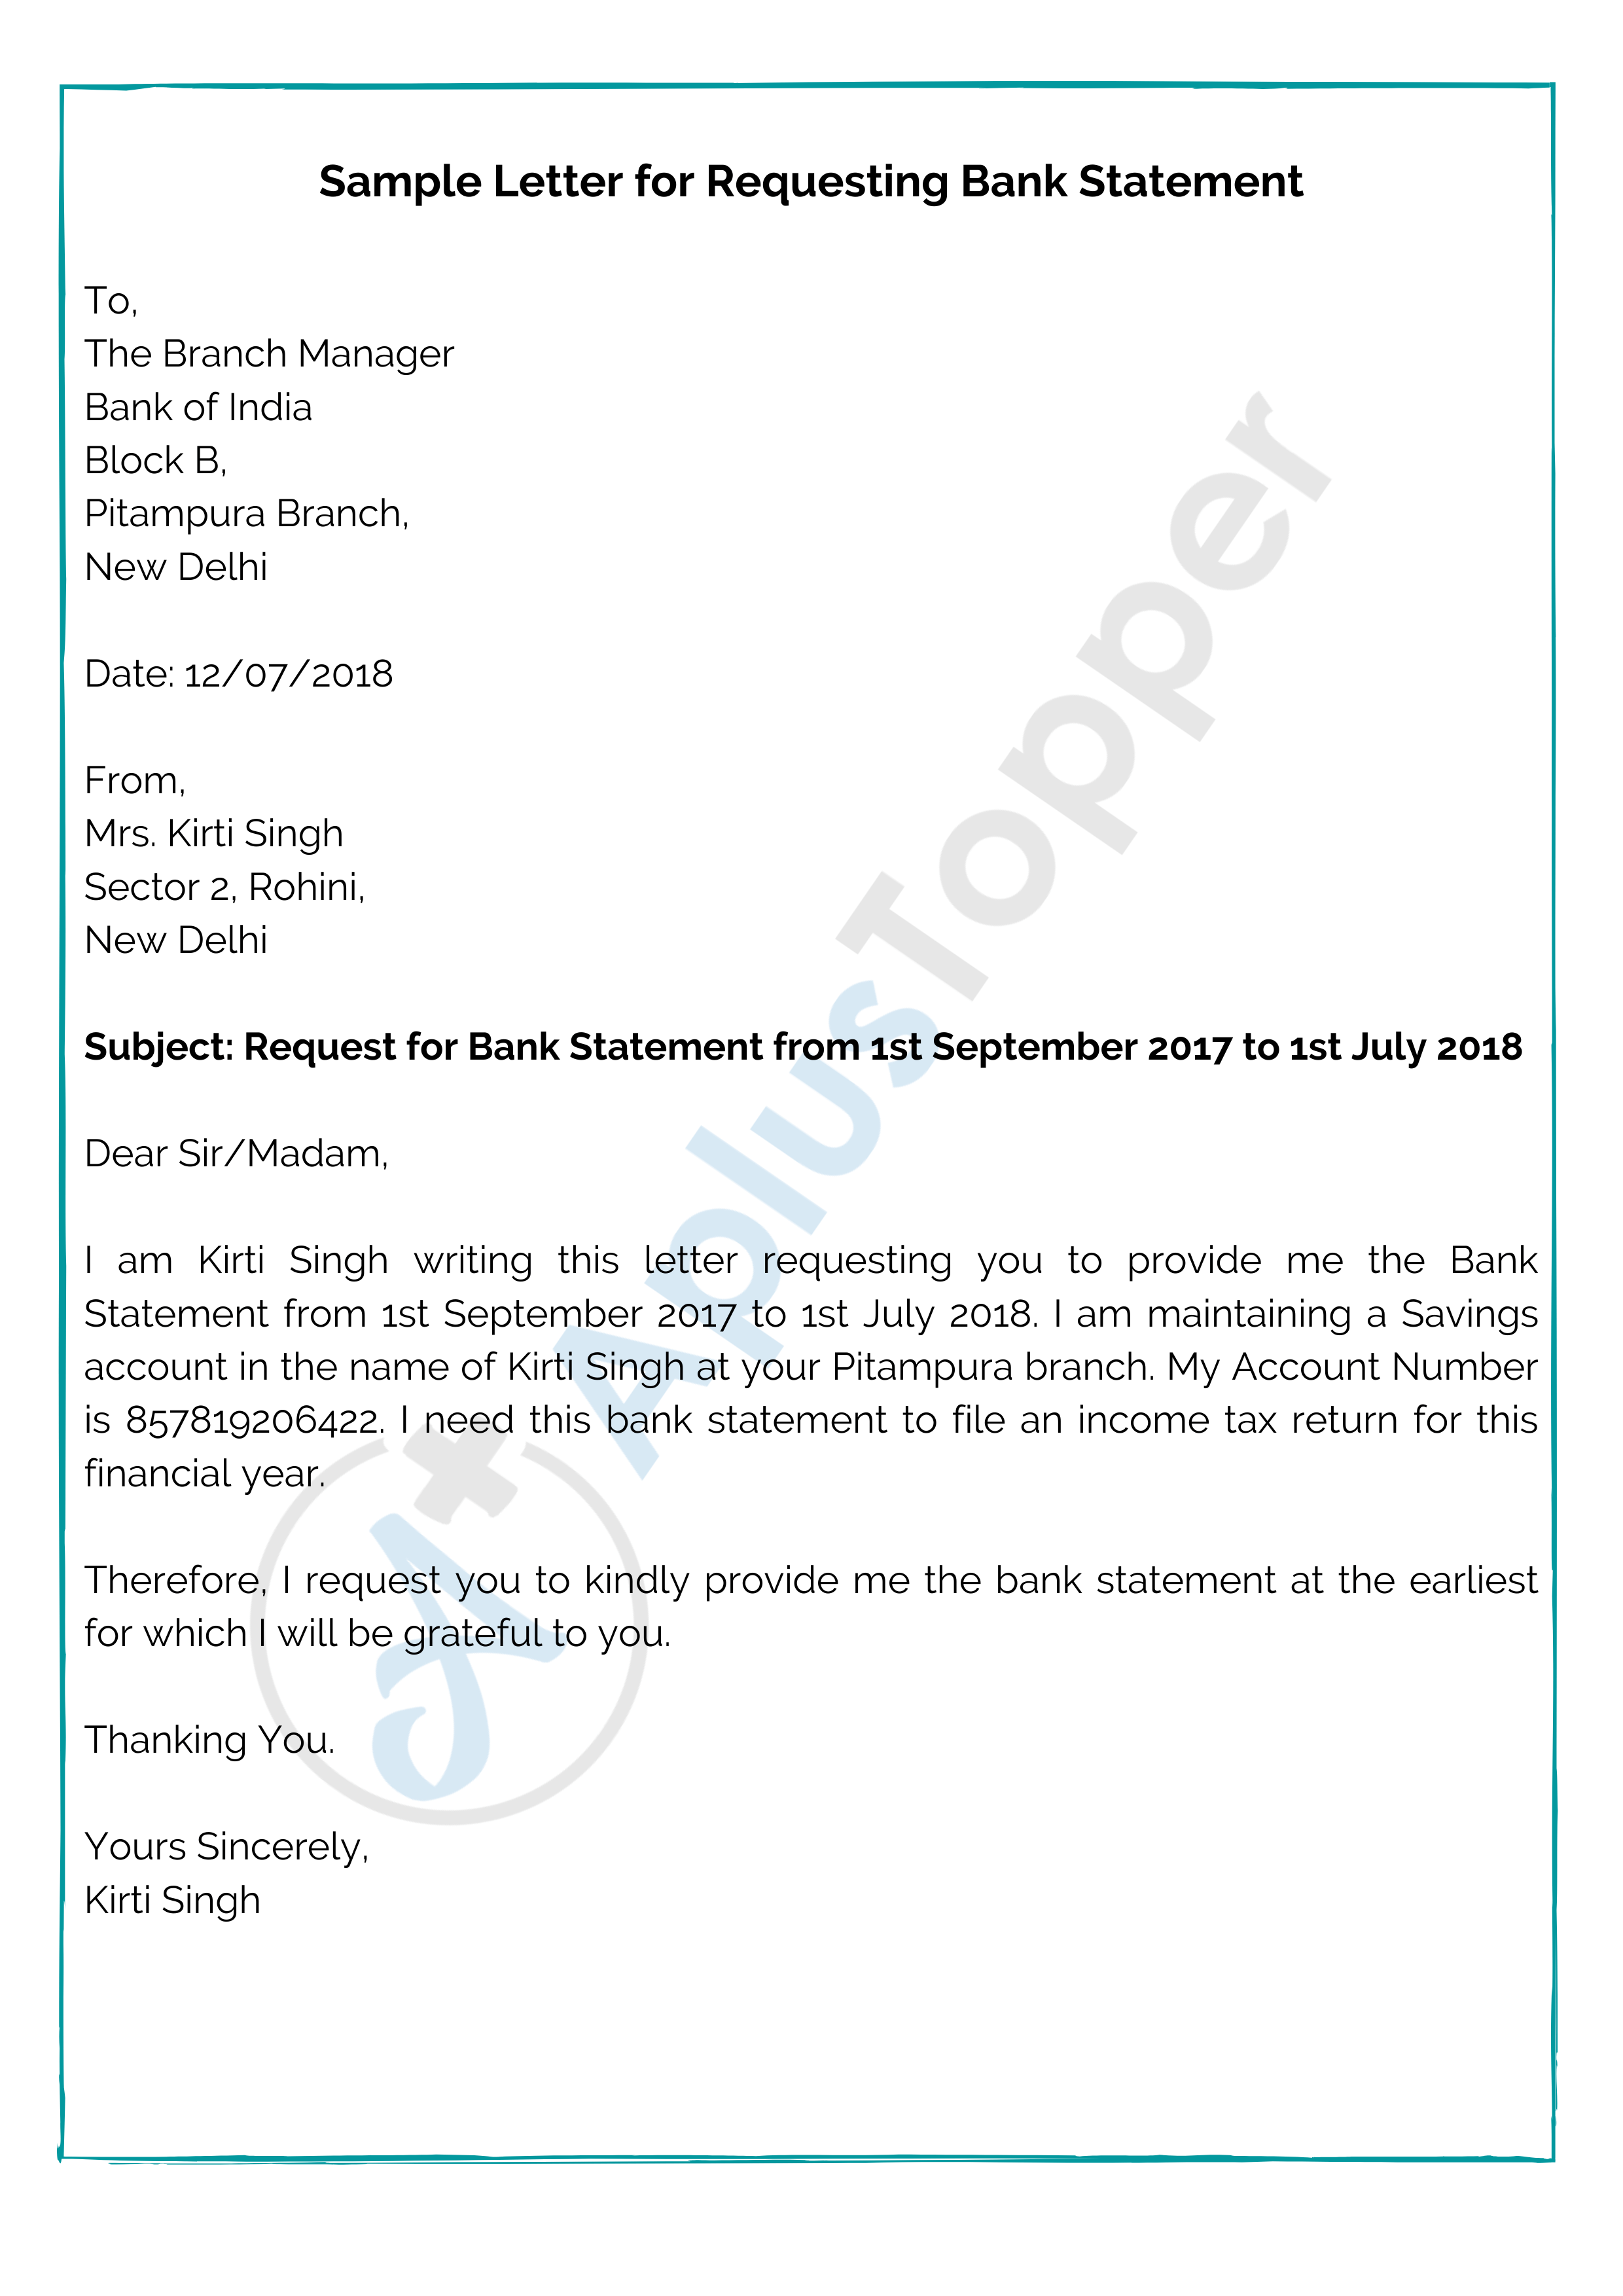 Letter for Requesting Bank Statement